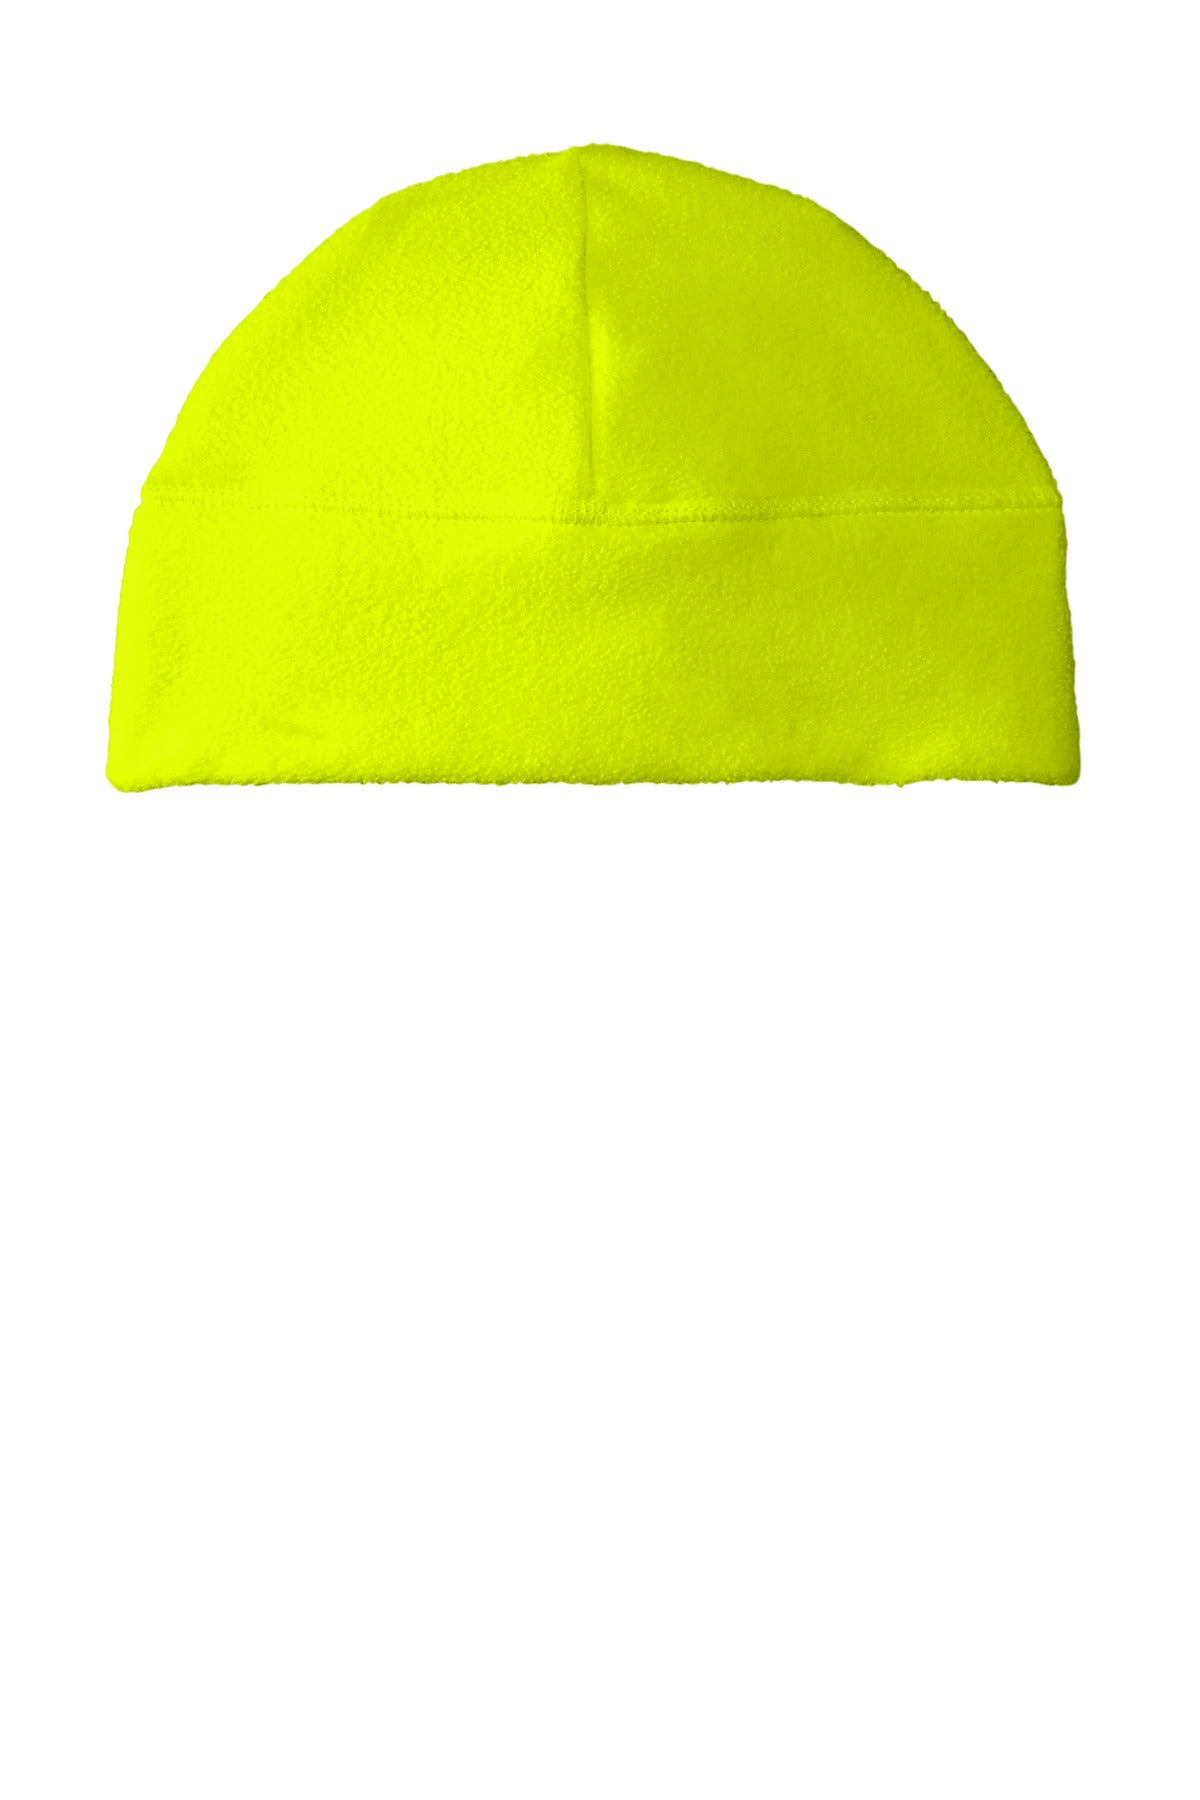 CornerStone ® Enhanced Visibility Fleece Beanie CS803 - Aspire Zone